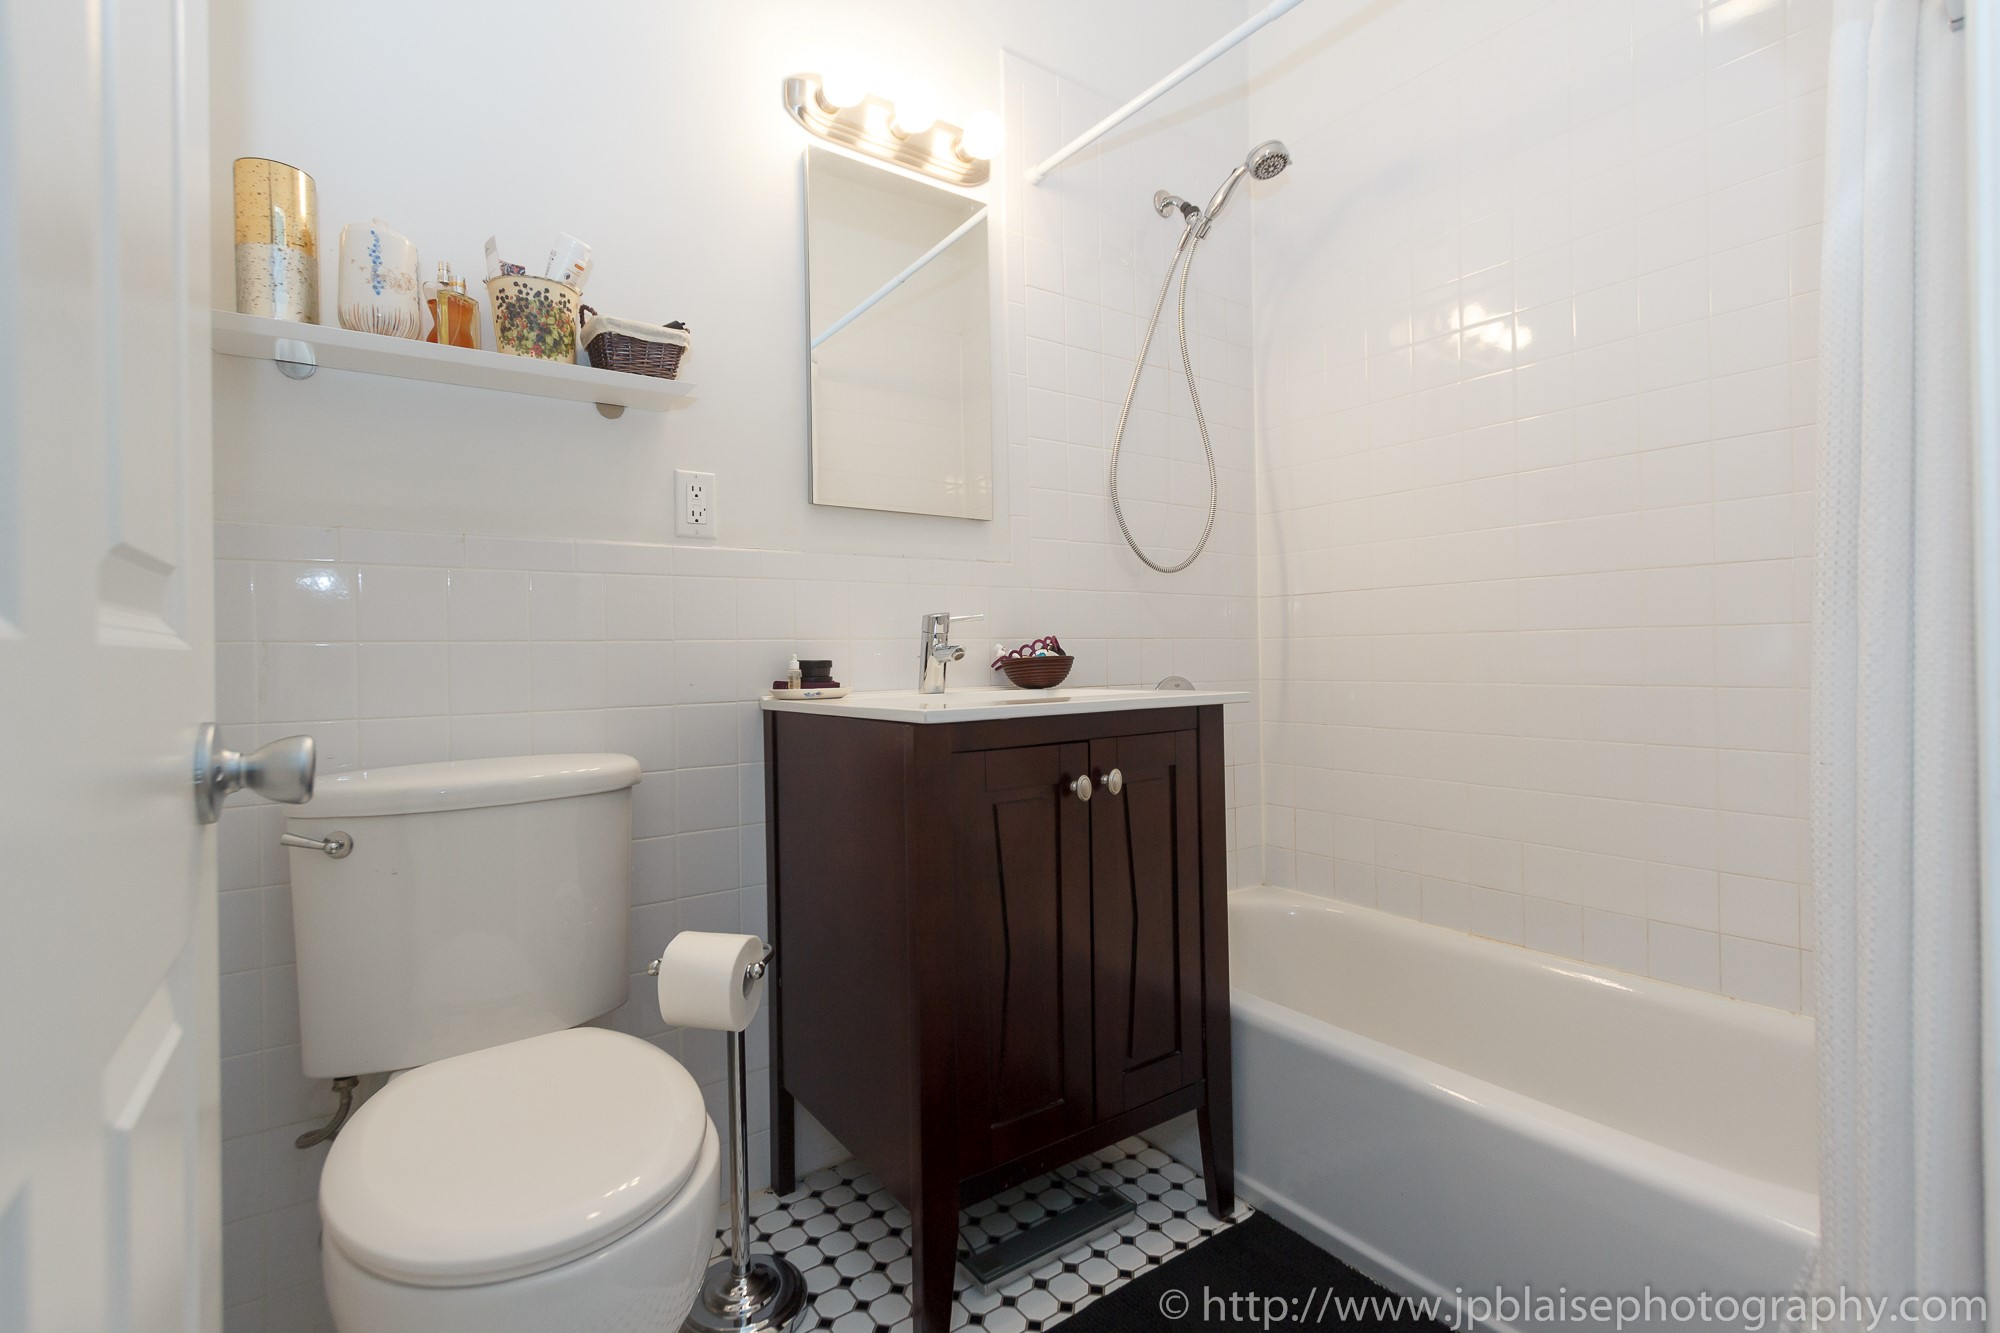 Bathroom Fixtures Upper East Side Nyc recent nyc apartment photographer work: two bedroom unit on the